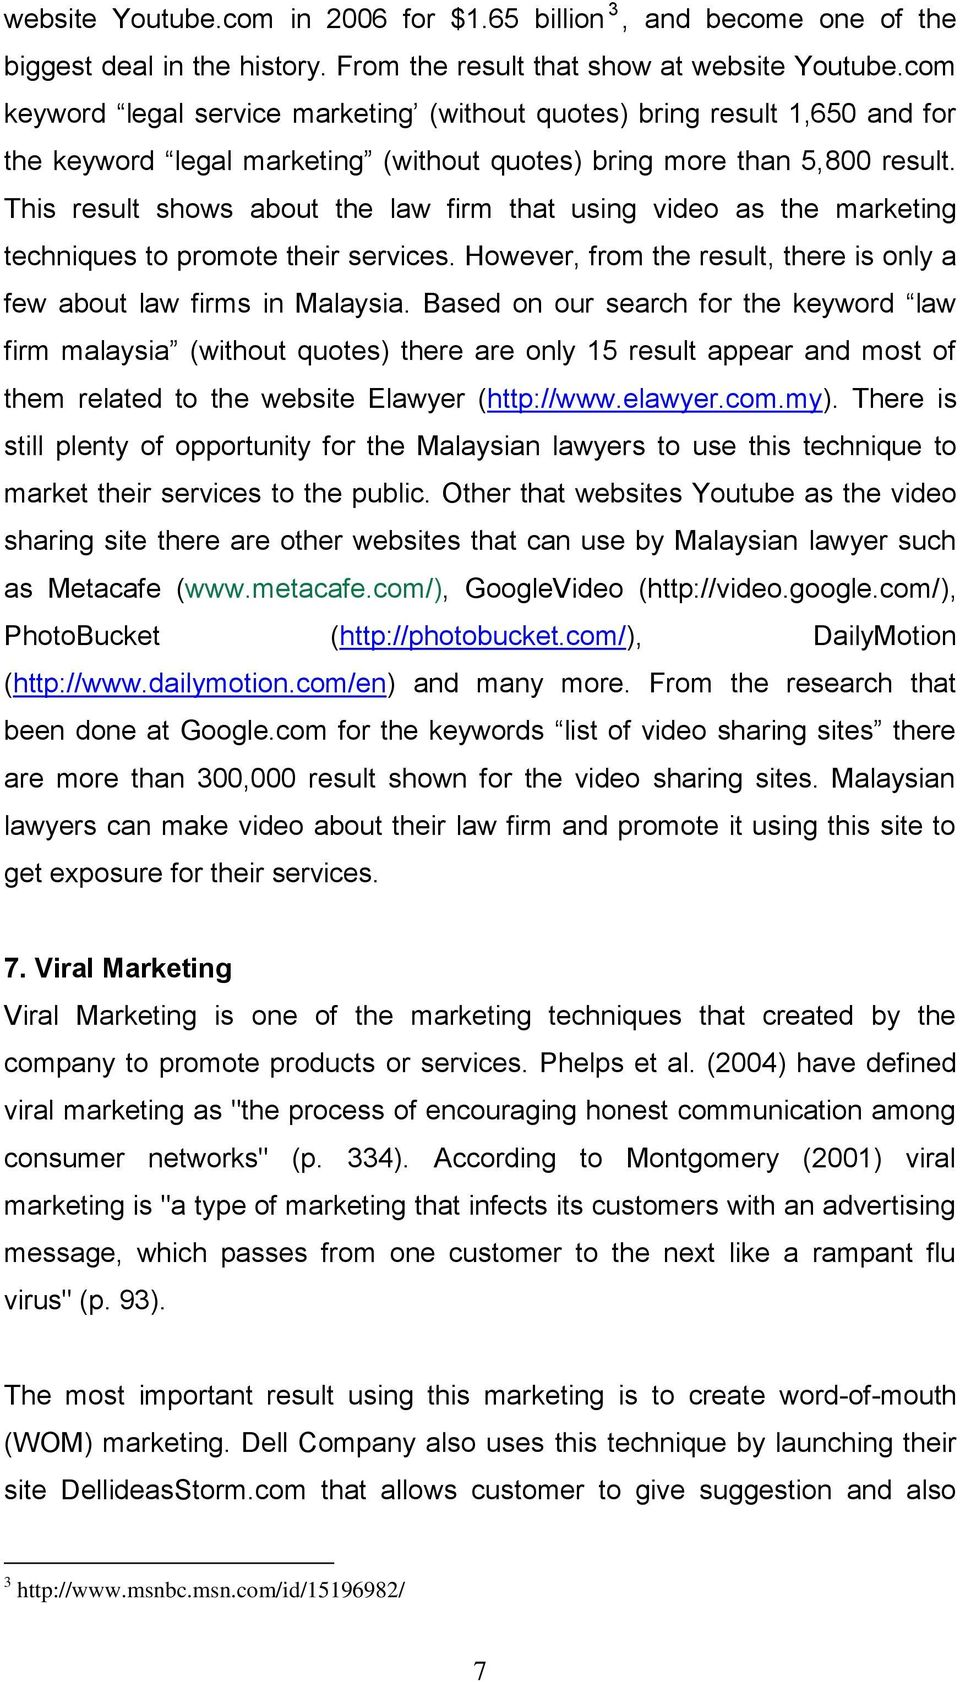 This result shows about the law firm that using video as the marketing techniques to promote their services. However, from the result, there is only a few about law firms in Malaysia.